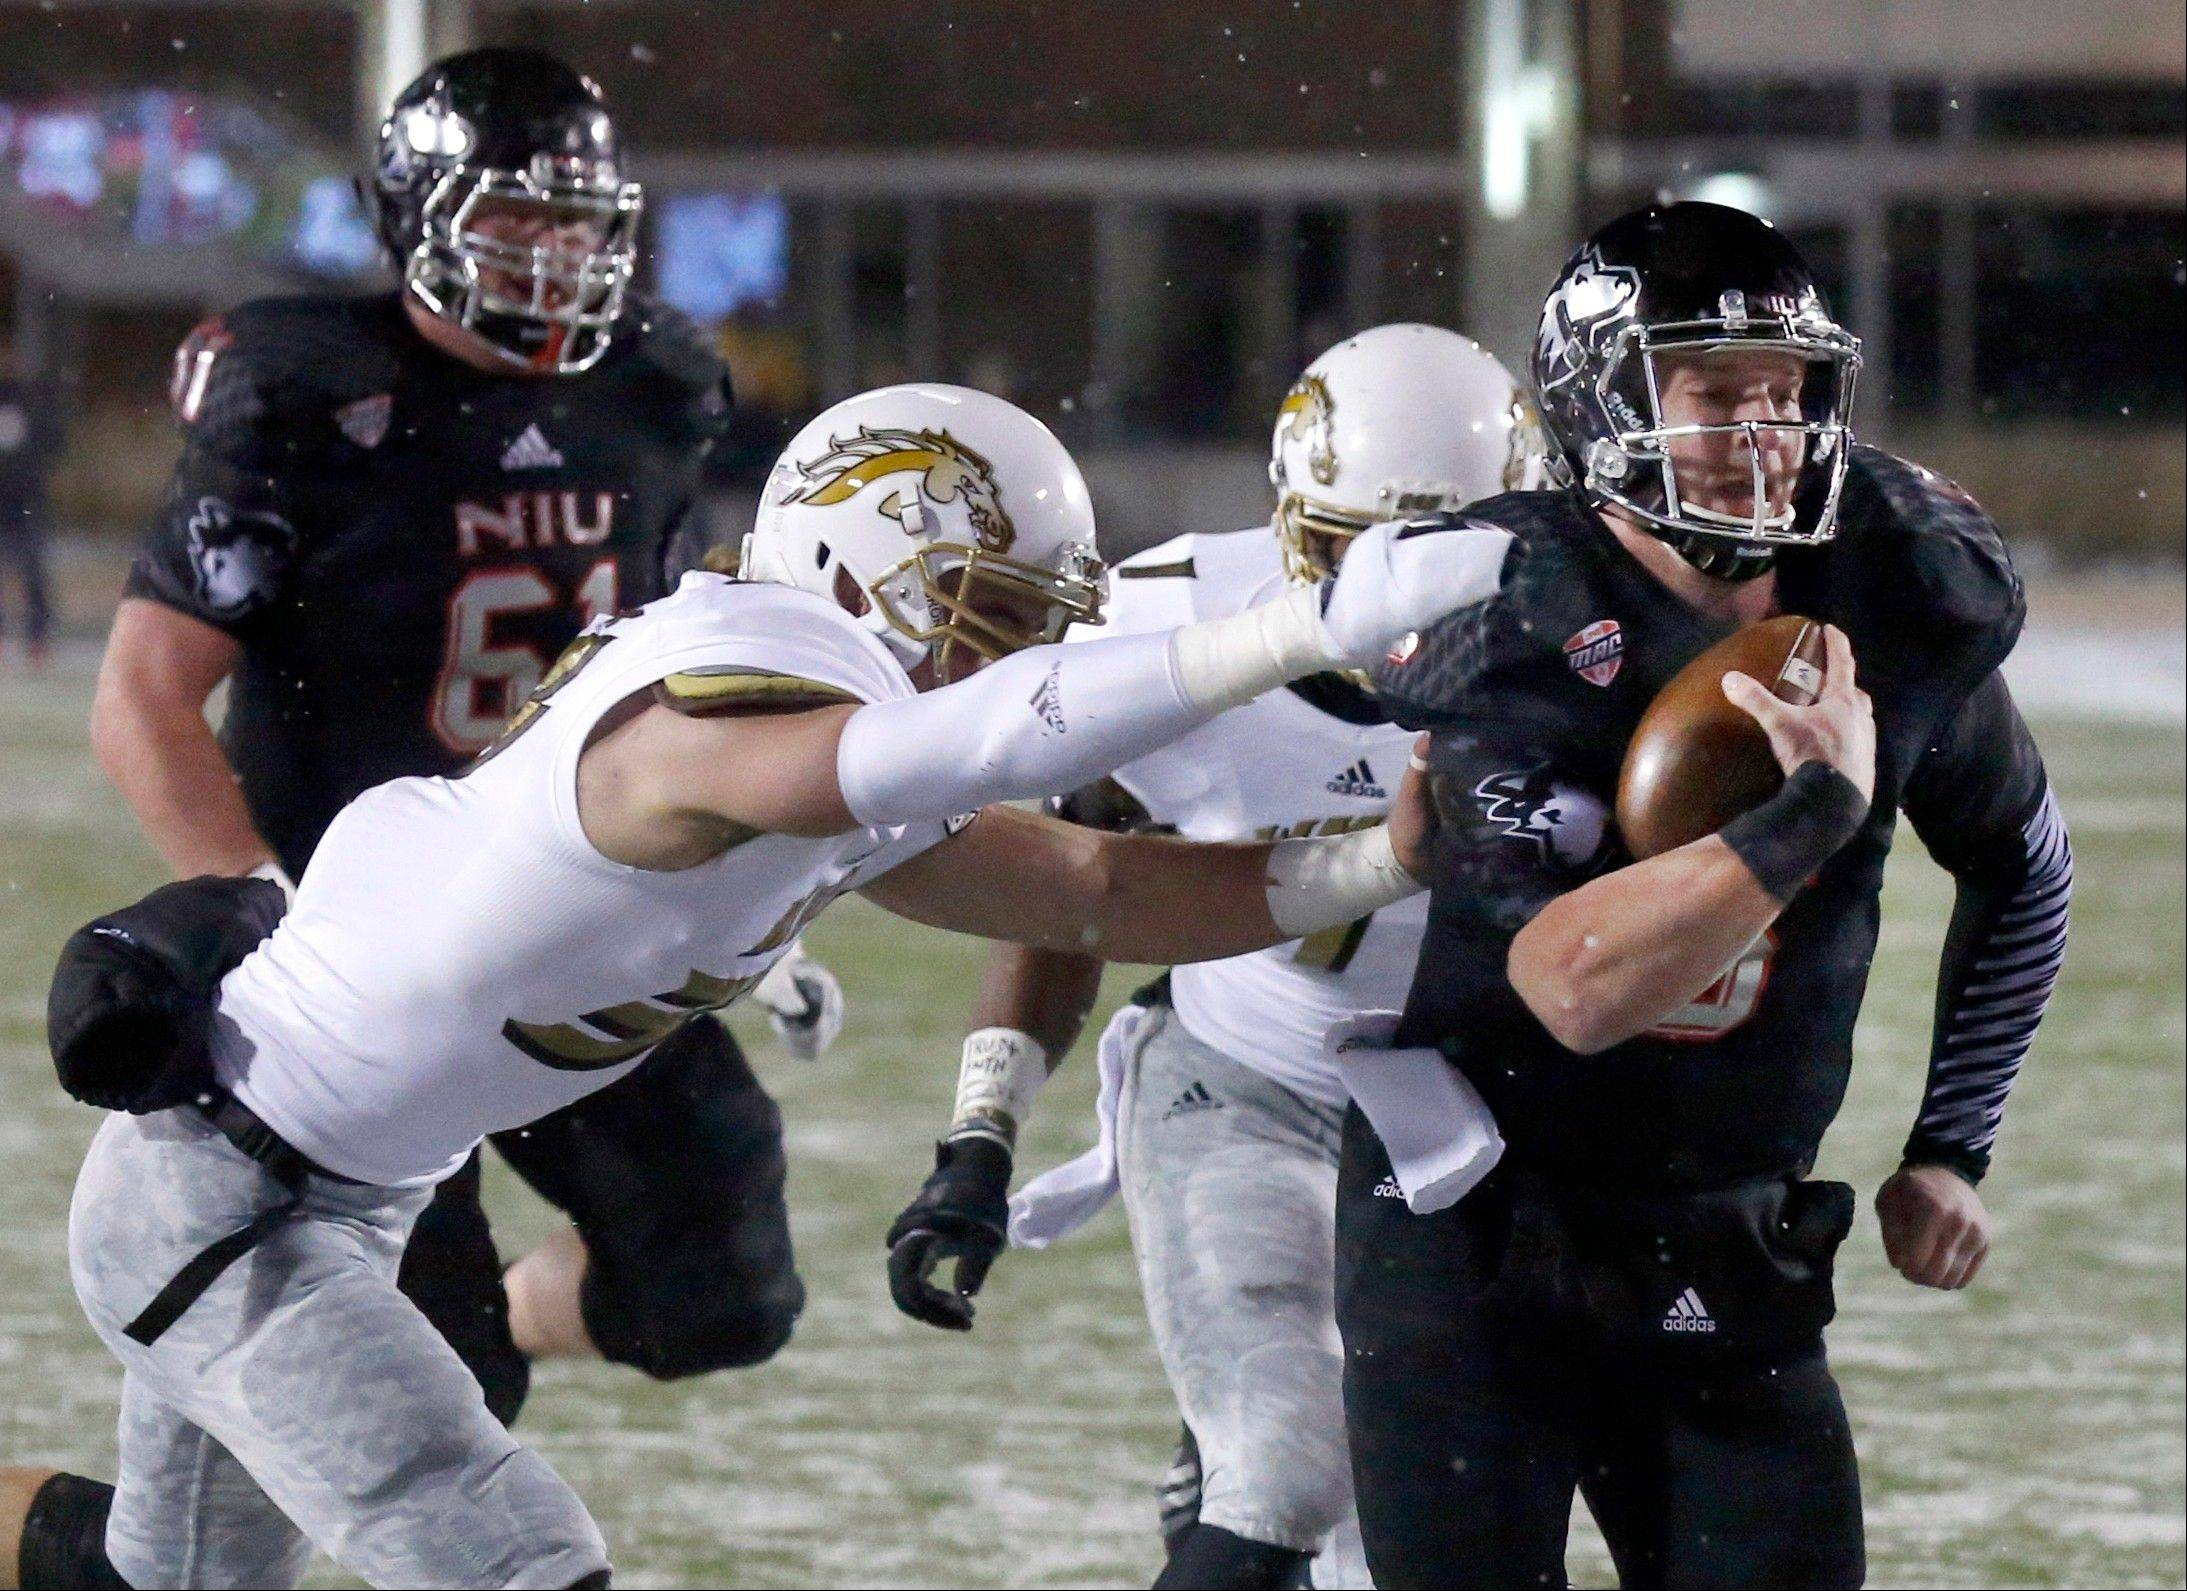 Northern Illinois quarterback Jordan Lynch carries the ball past two Western Michigan defenders during the first half Tuesday night in DeKalb.